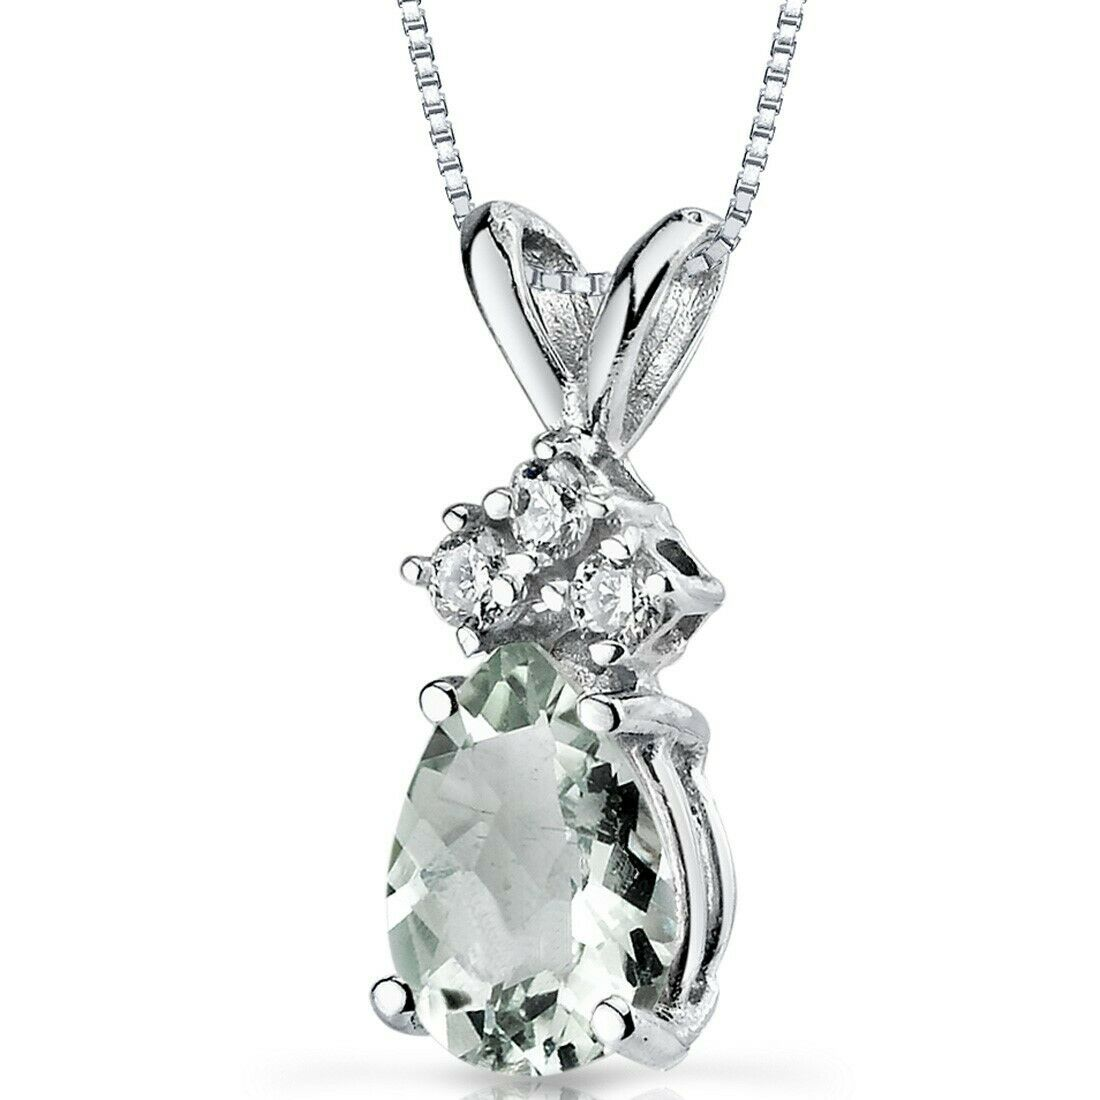 17 mm Occupational Therapist Pendant Jewels Obsession 14K White Gold O.T